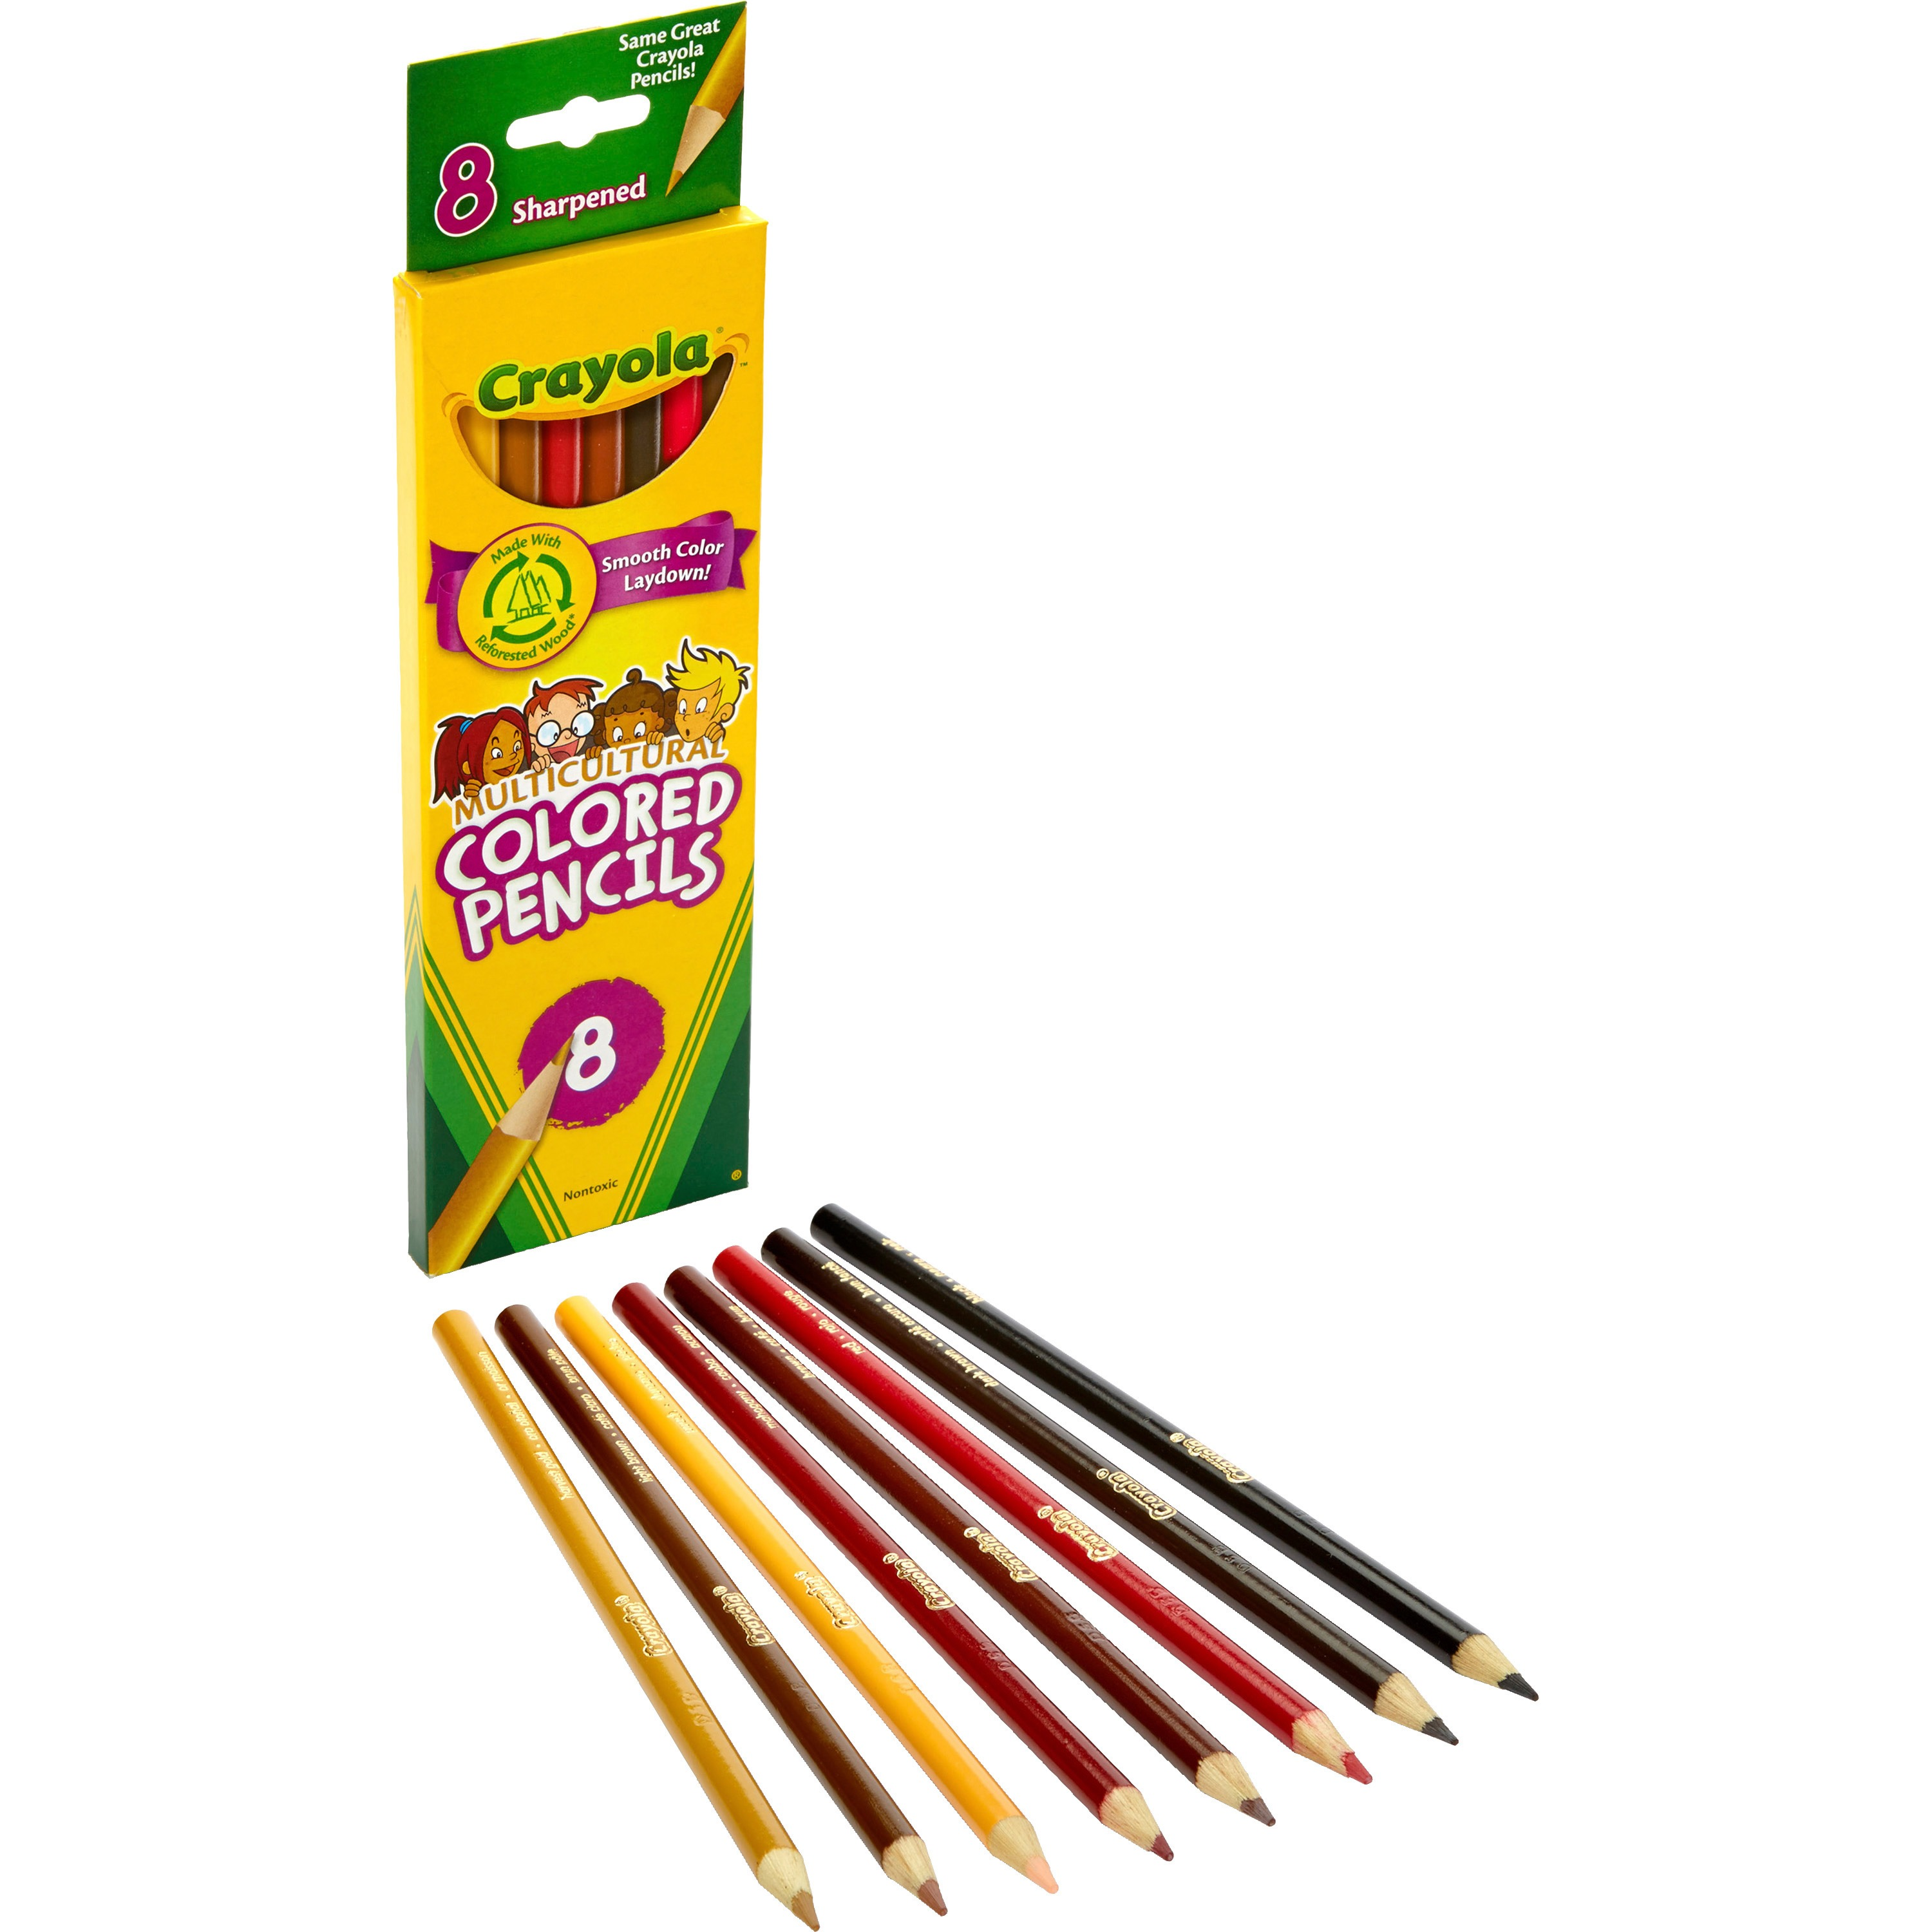 Crayola, CYO684208, Multicultural Color Pencils, 8 / Set